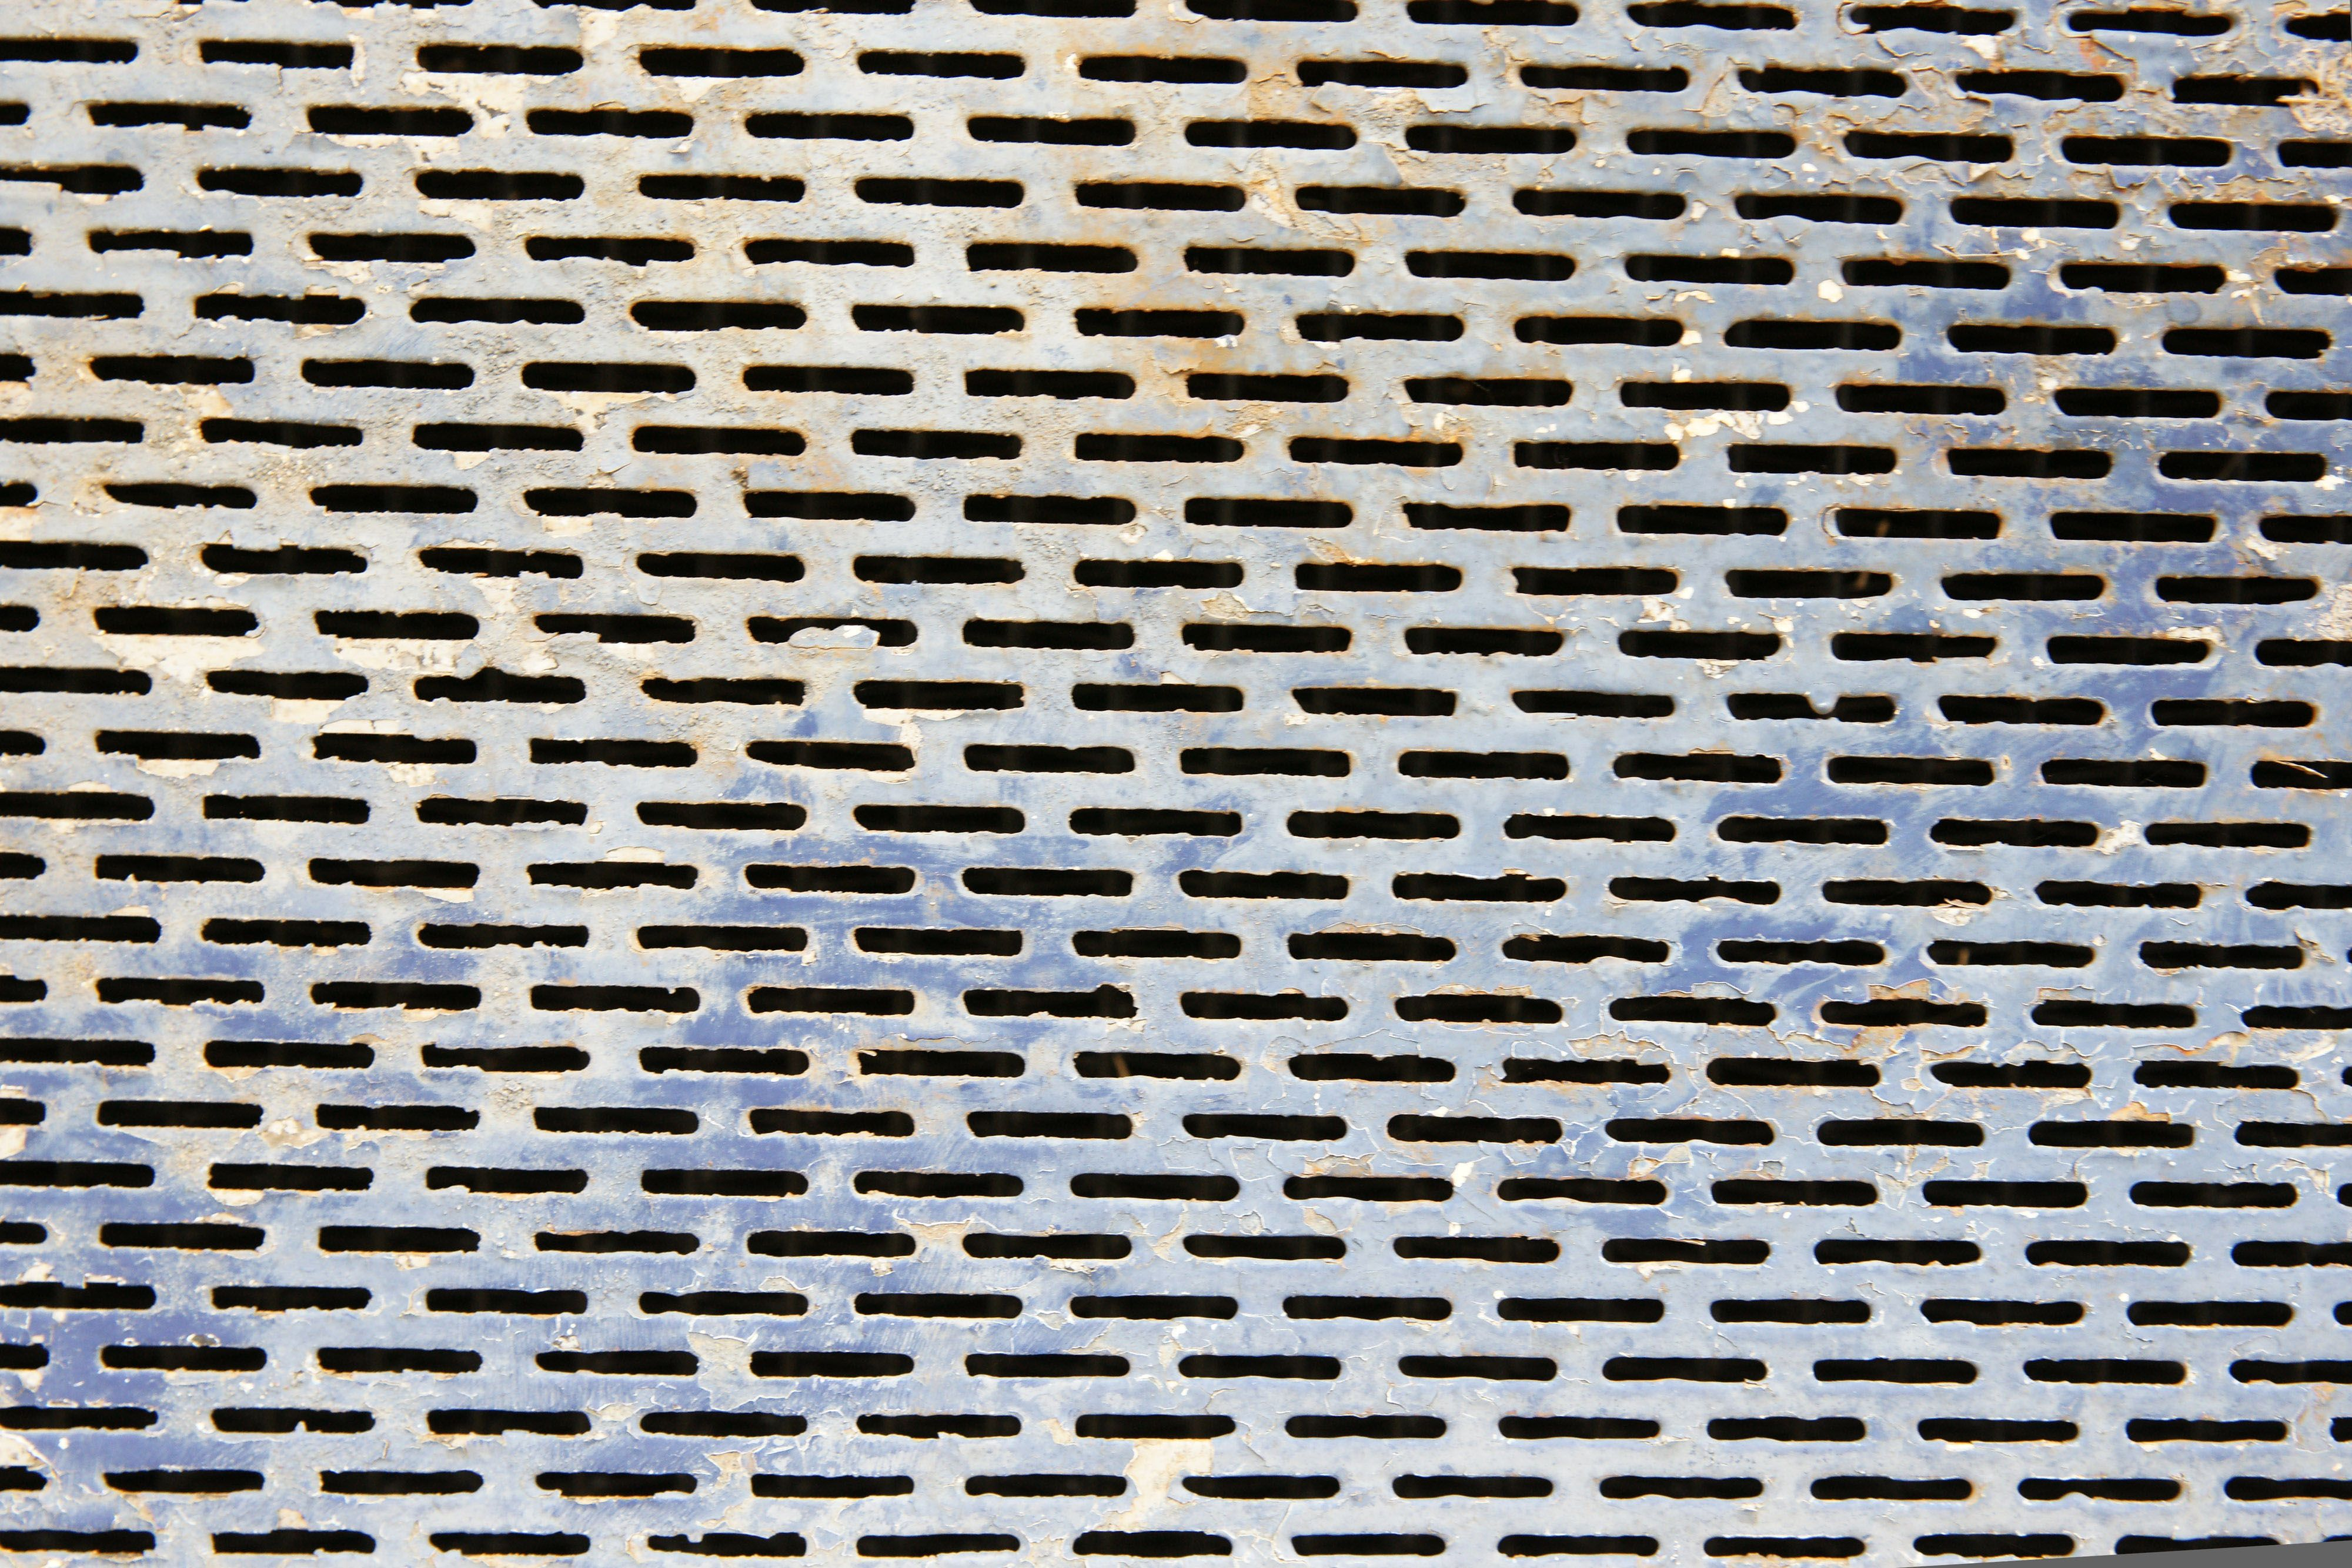 Old Steel Grill Or Mesh Background Http Www Myfreetextures Com Old Steel Grill Or Mesh Background Steel Mesh Background